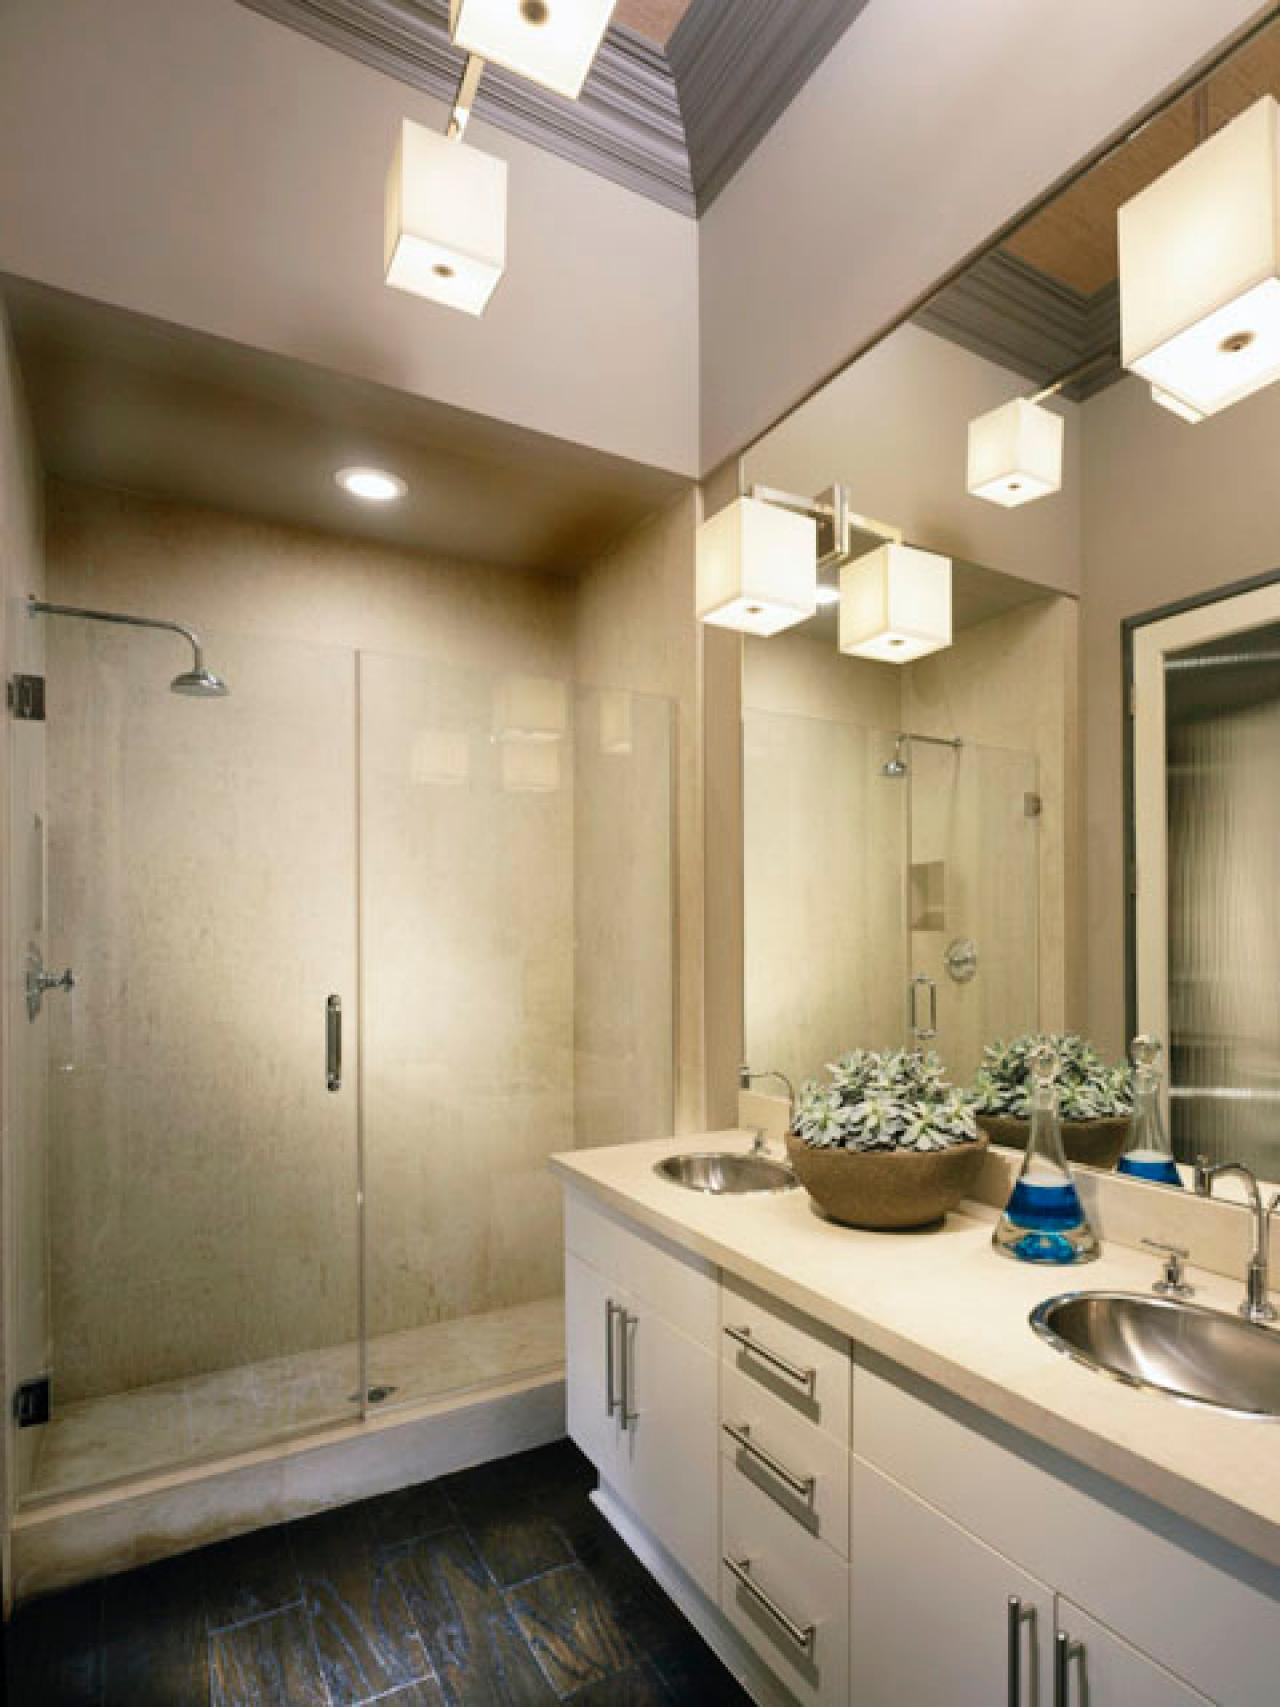 overhead bathroom lighting. vanity lighting overhead bathroom s